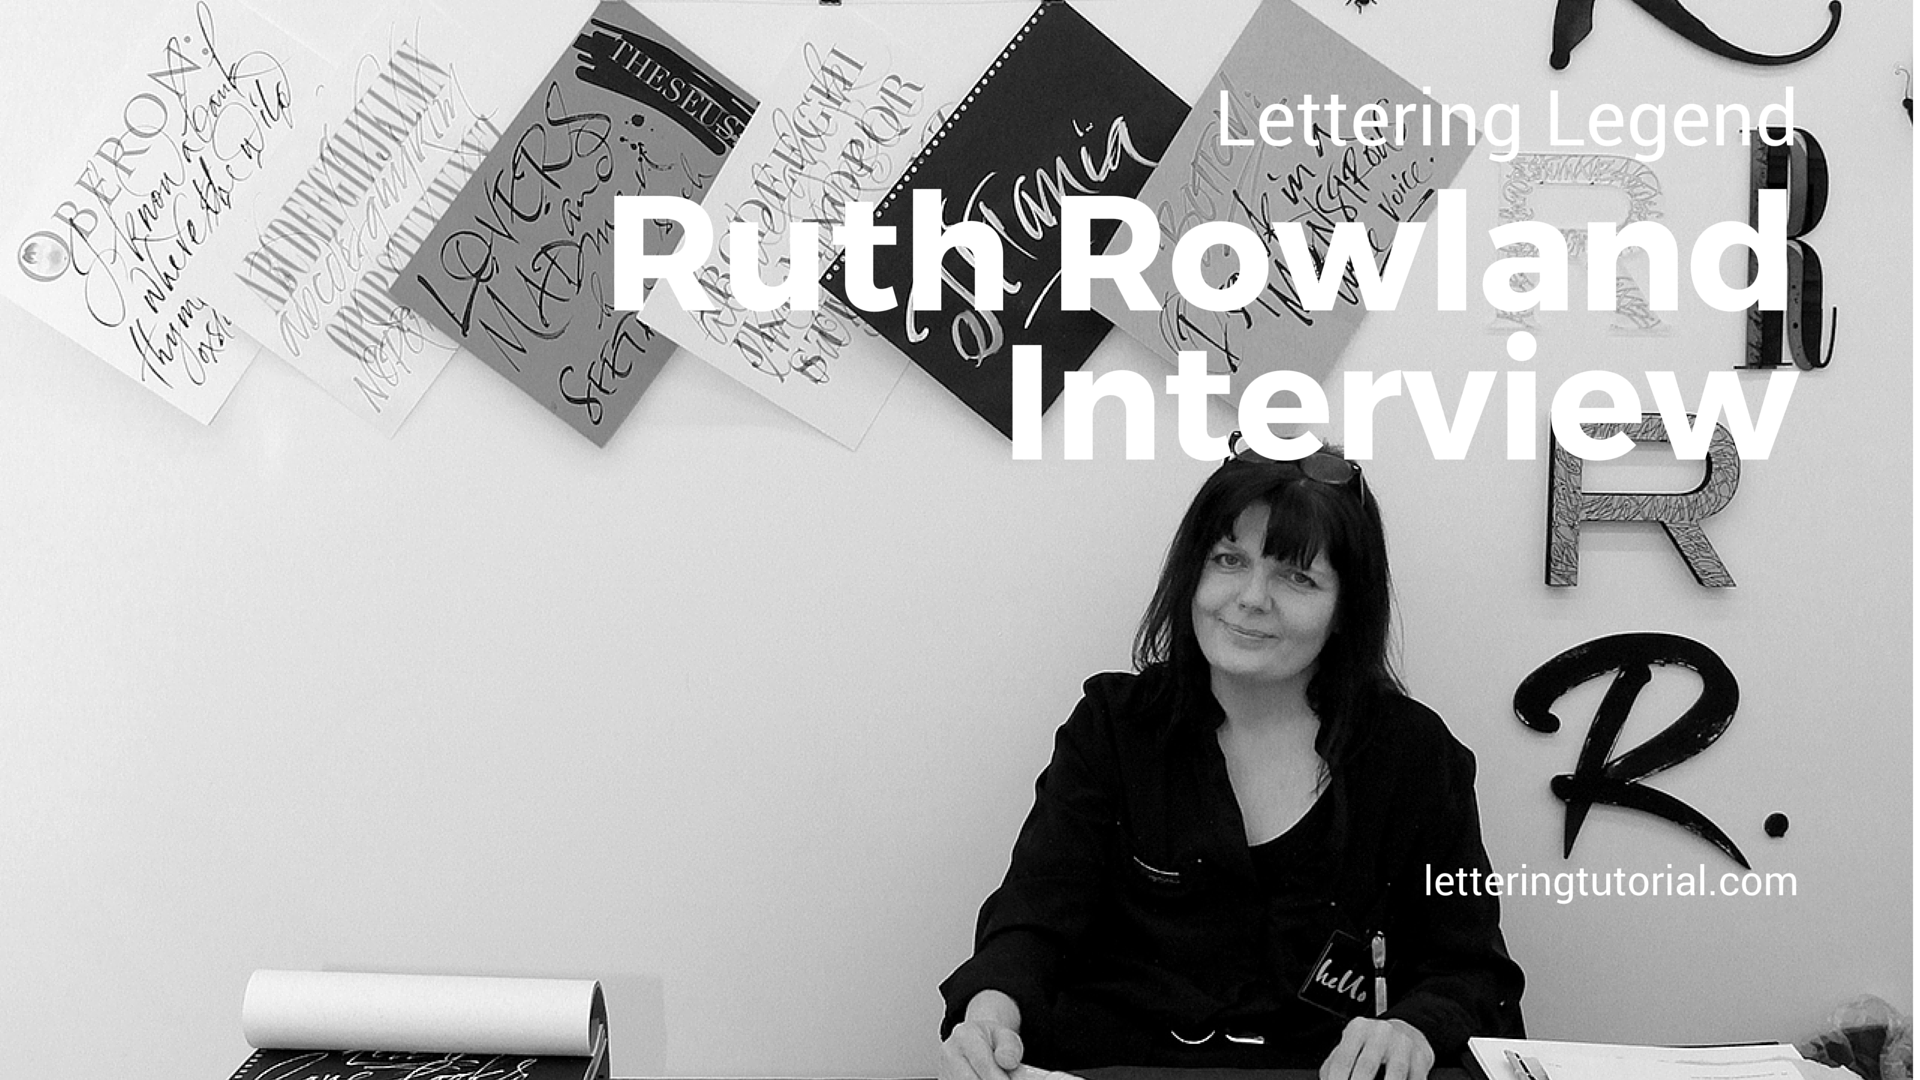 Lettering Legend Ruth Rowland Interview